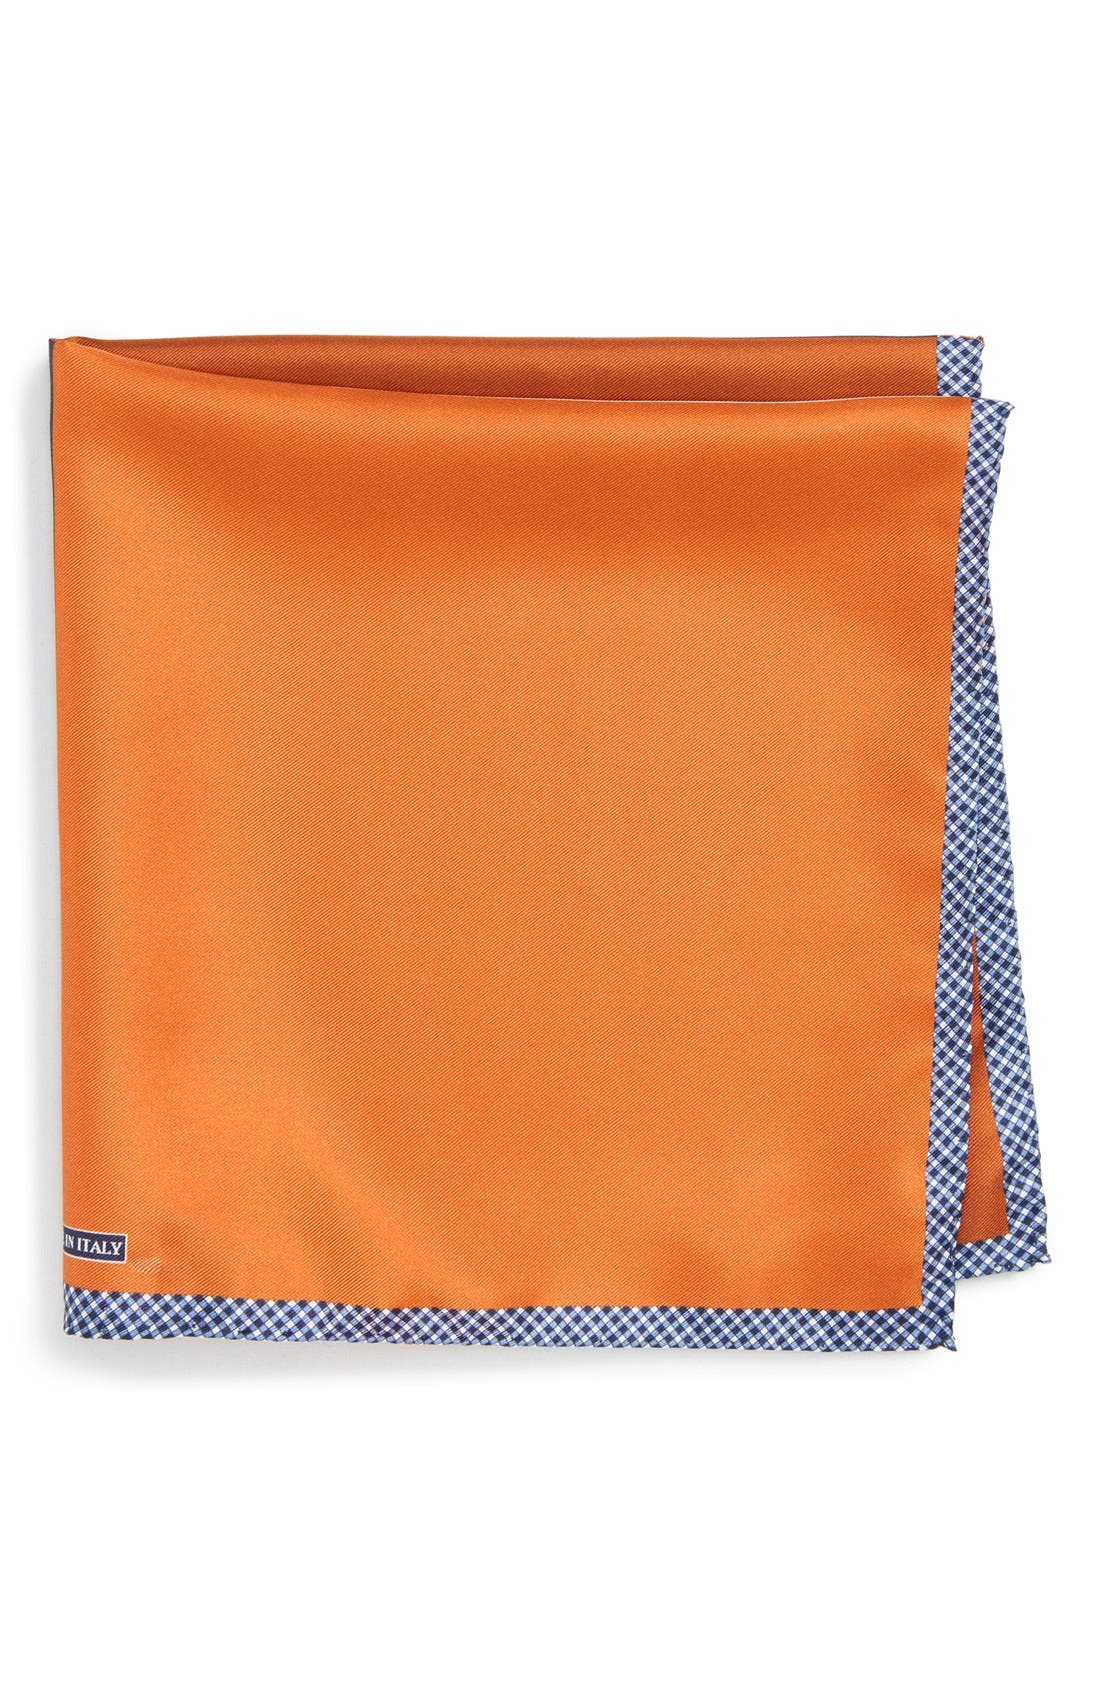 Alternate Image 1 Selected - Nordstrom Men's Shop Panel Silk Pocket Square